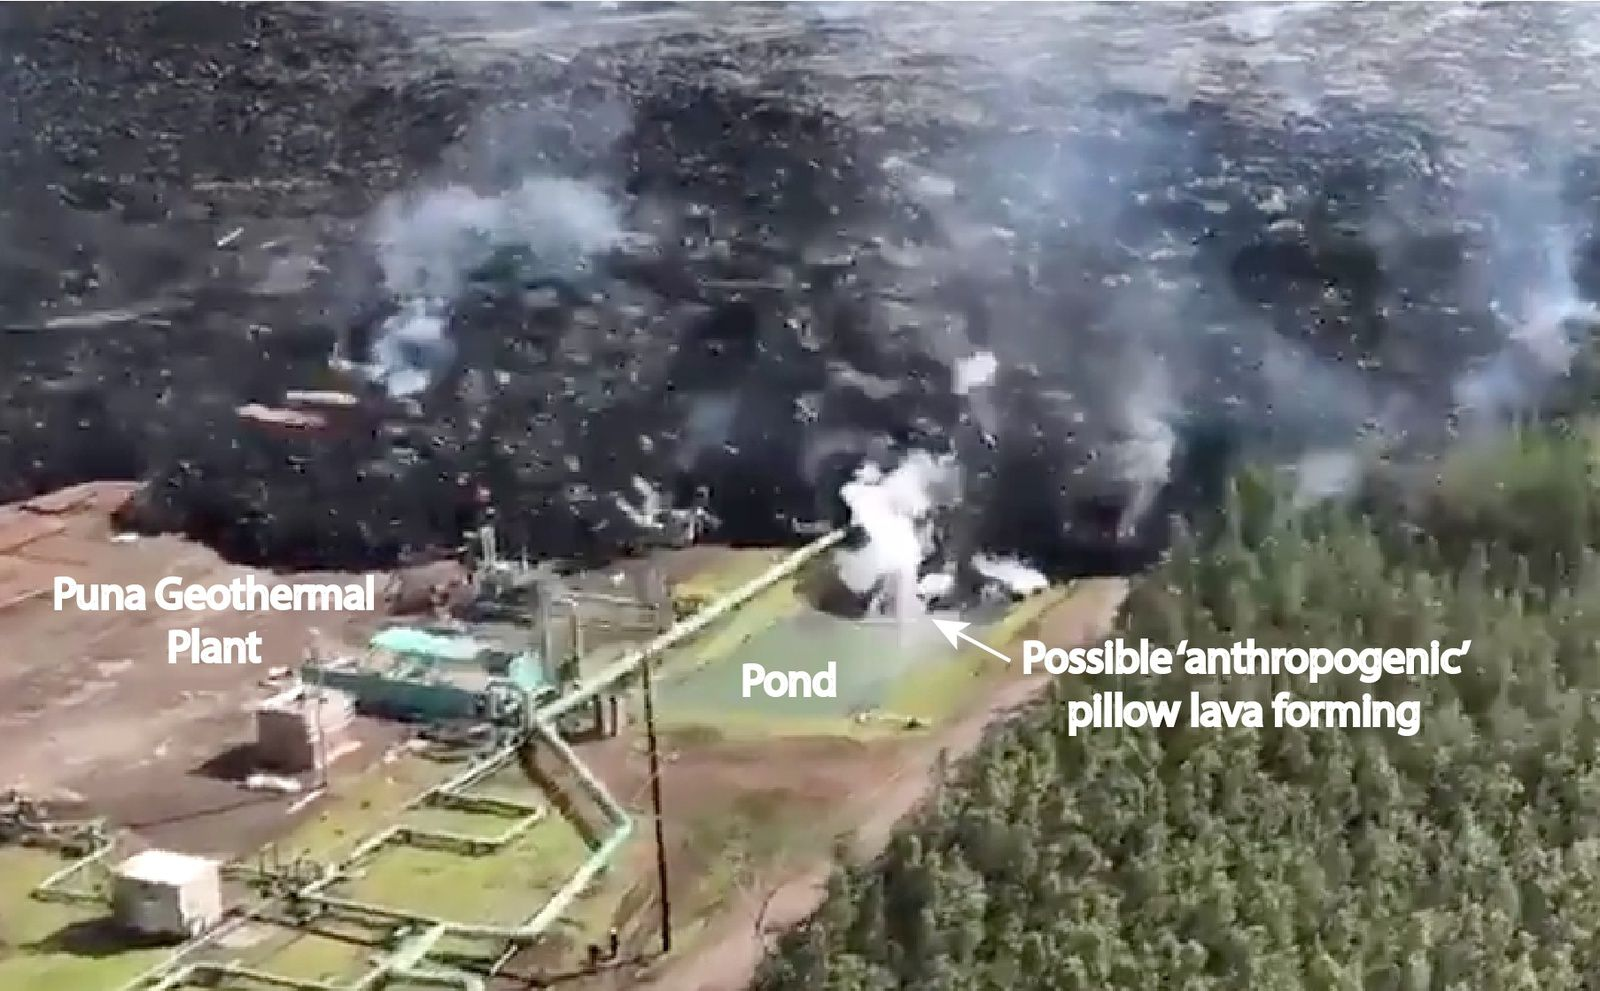 Kilauea Zone de rift Est  - 28.05.2018 - formation possible de Pillow lavas anthropogéniques suite à l'entrée de la lave dans une réservoir d'eau  - screen capture from video link from Mileka Lincoln